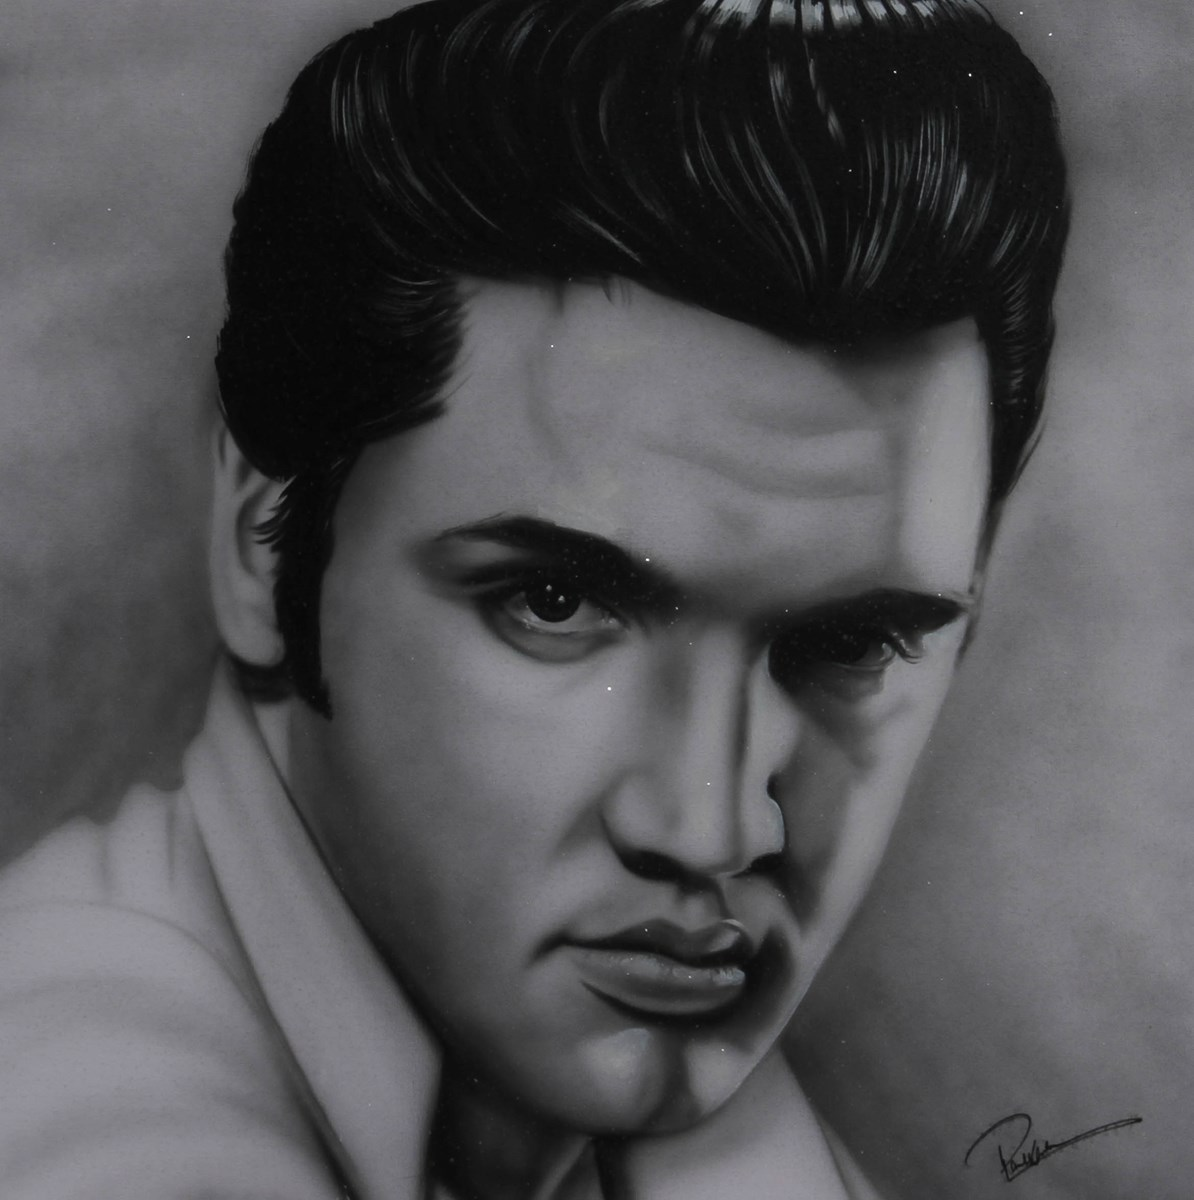 Elvis Presley II by paul karslake - Orig Monochrome Airbrush W/Diamond Dust on Canvas sized 30x30 inches. Available from Whitewall Galleries